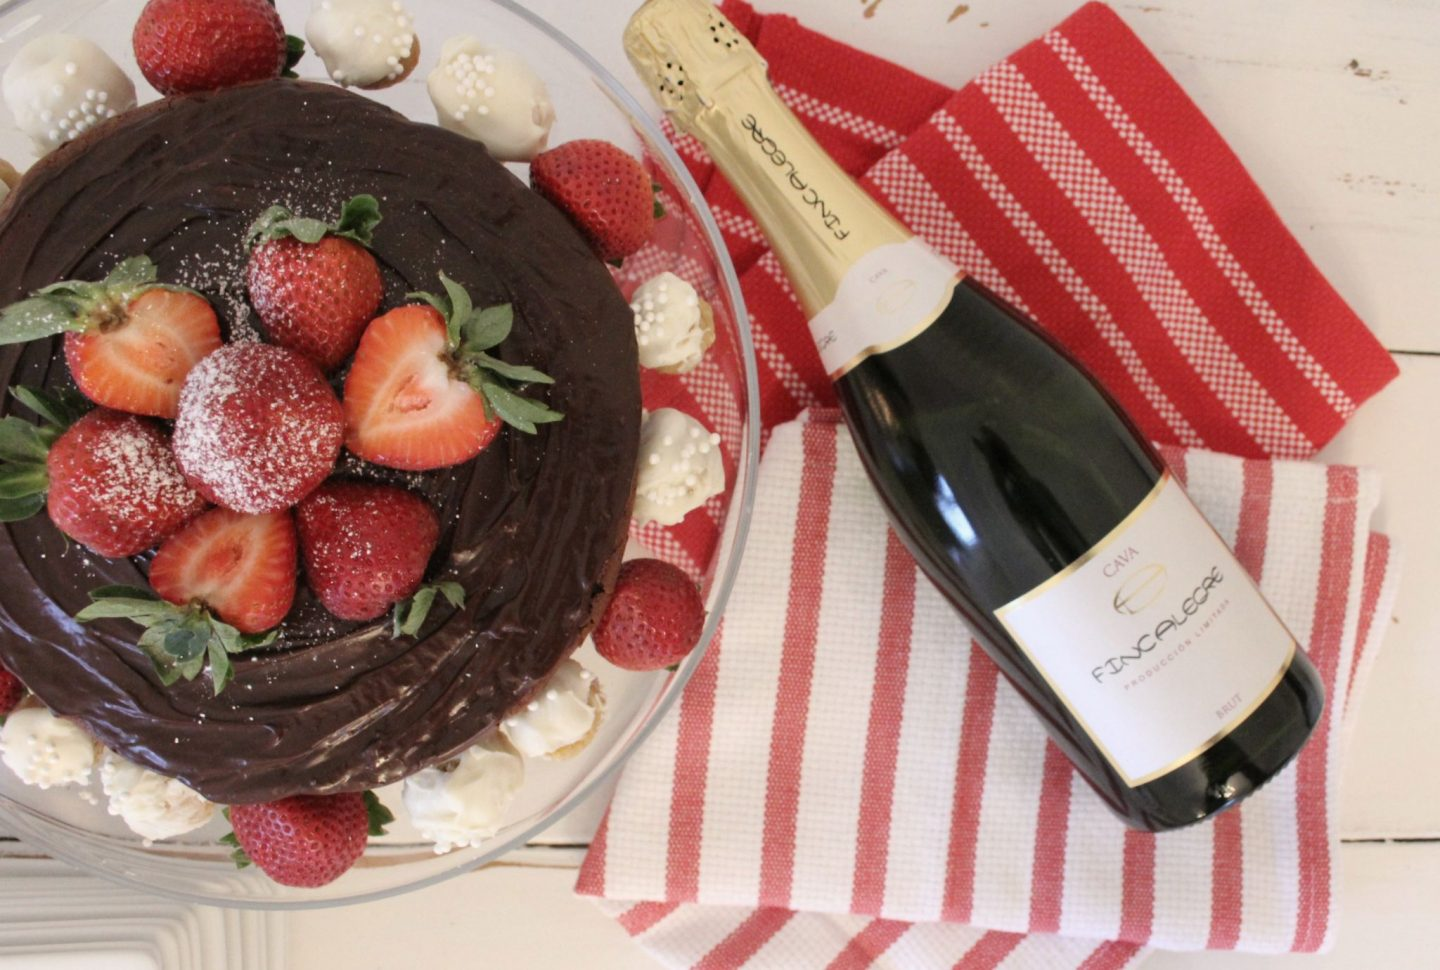 Beautiful chocolate cake, bottle of Cava, and red and white stripe dishtowels - Hello Lovely Studio